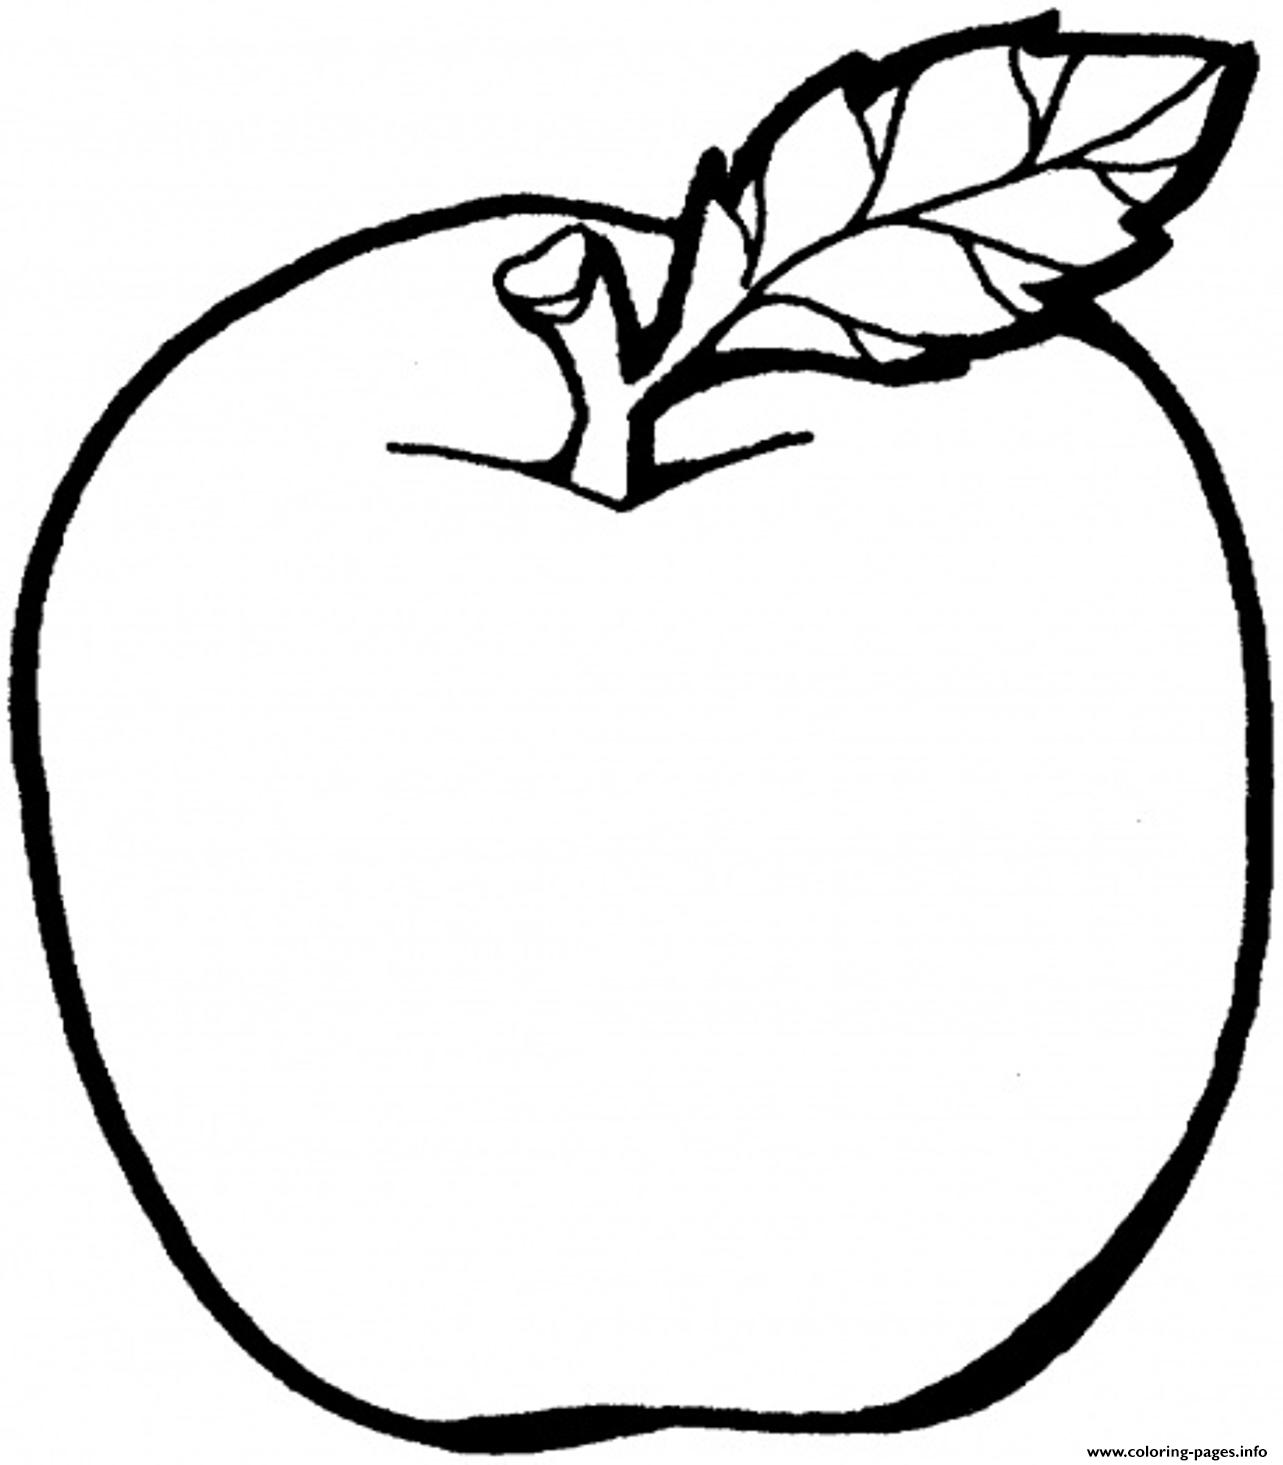 apples coloring pages for kids - photo#26